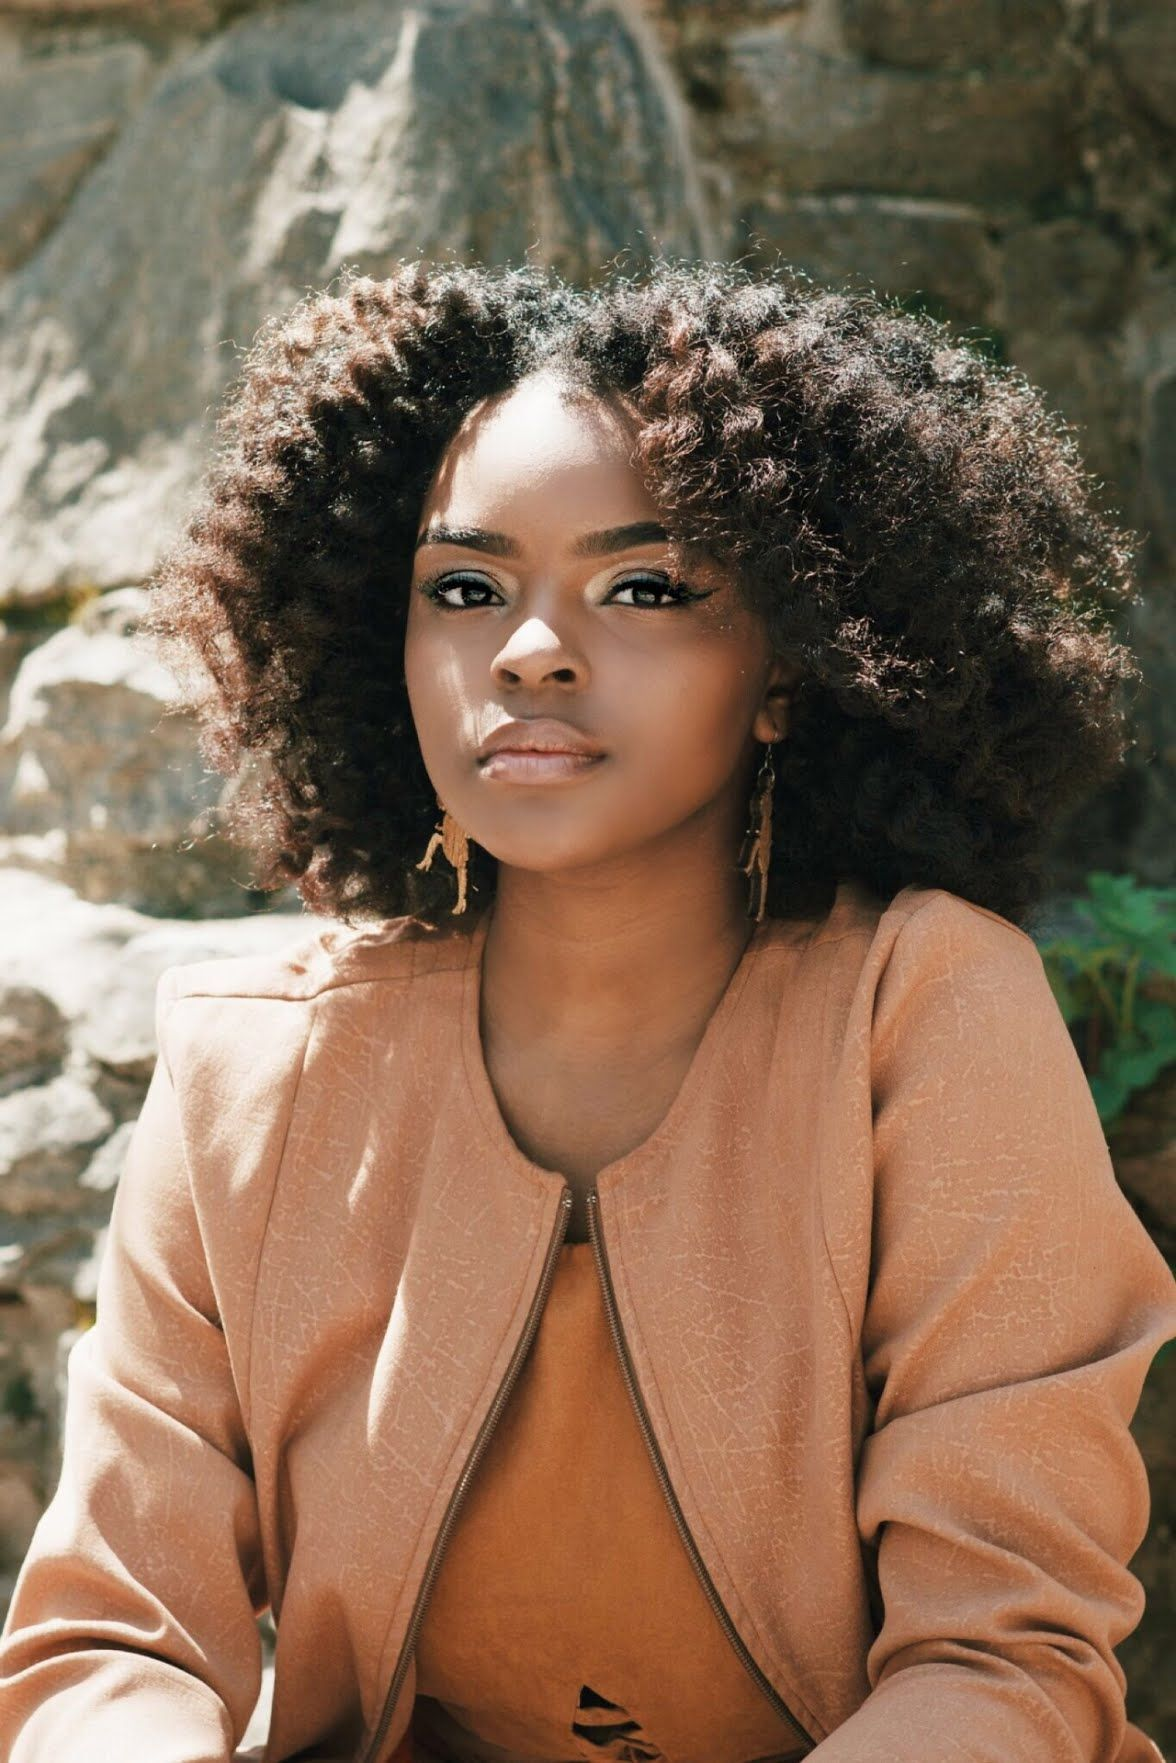 Pin by Maura Spires on STUNNING BLACK BEAUTY Afro hair